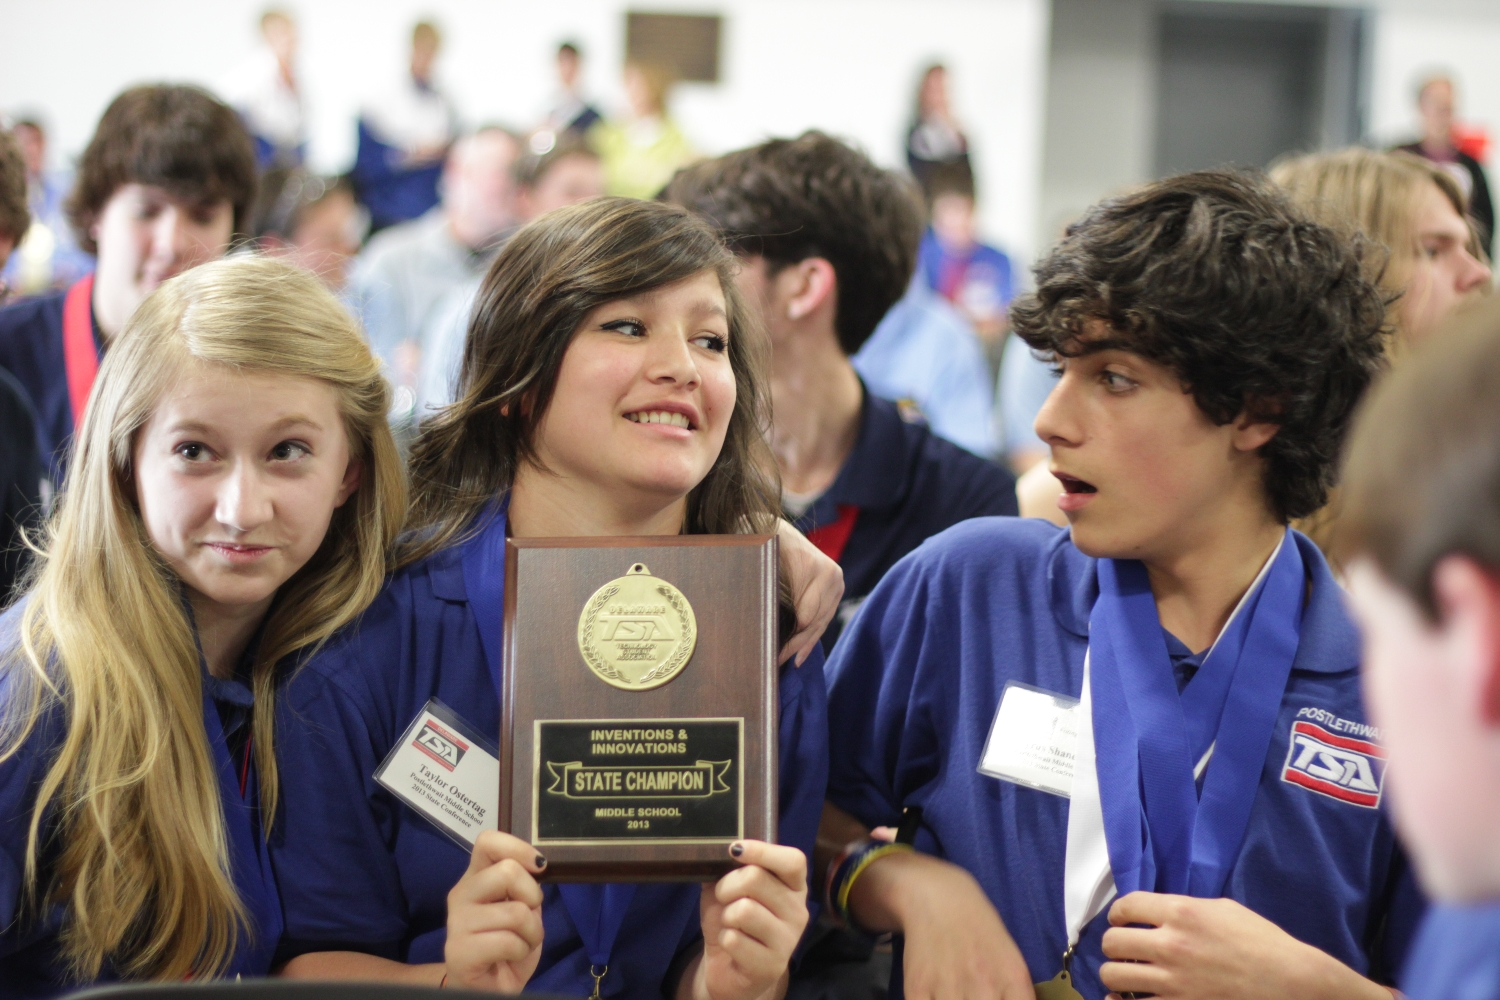 conference student technology tsa association technical career engineering innovation state